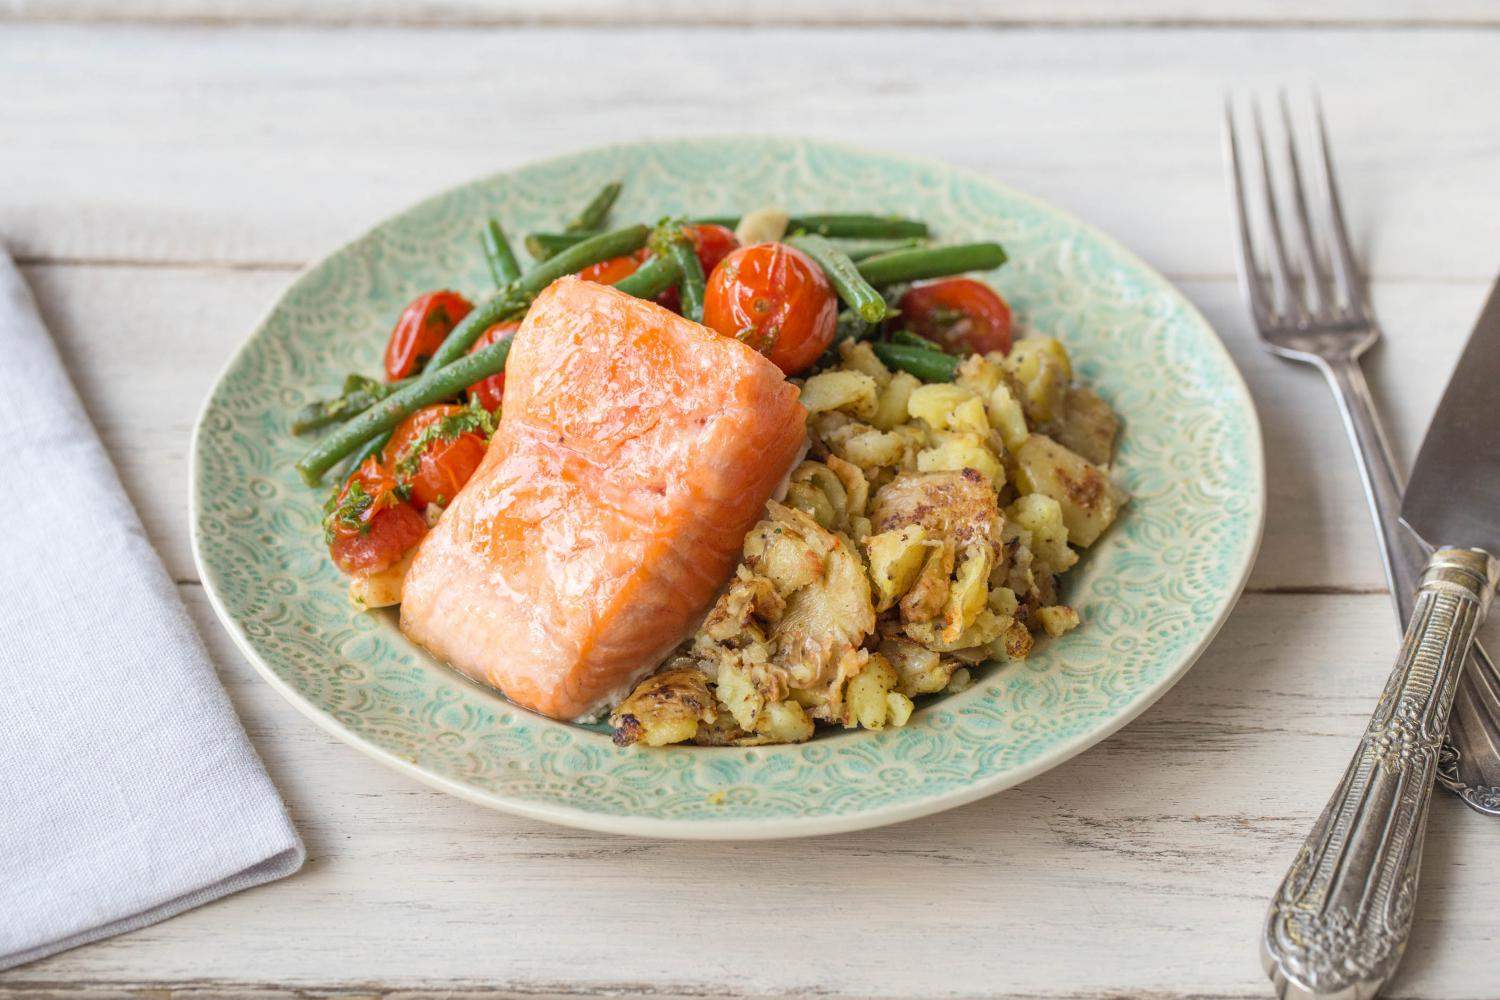 https://cdn.hellofresh.com/gb/cms/press/ROASTED_SALMON_WITH_BURST_CHERRY_TOMATOES_&_GREEN_BEANS